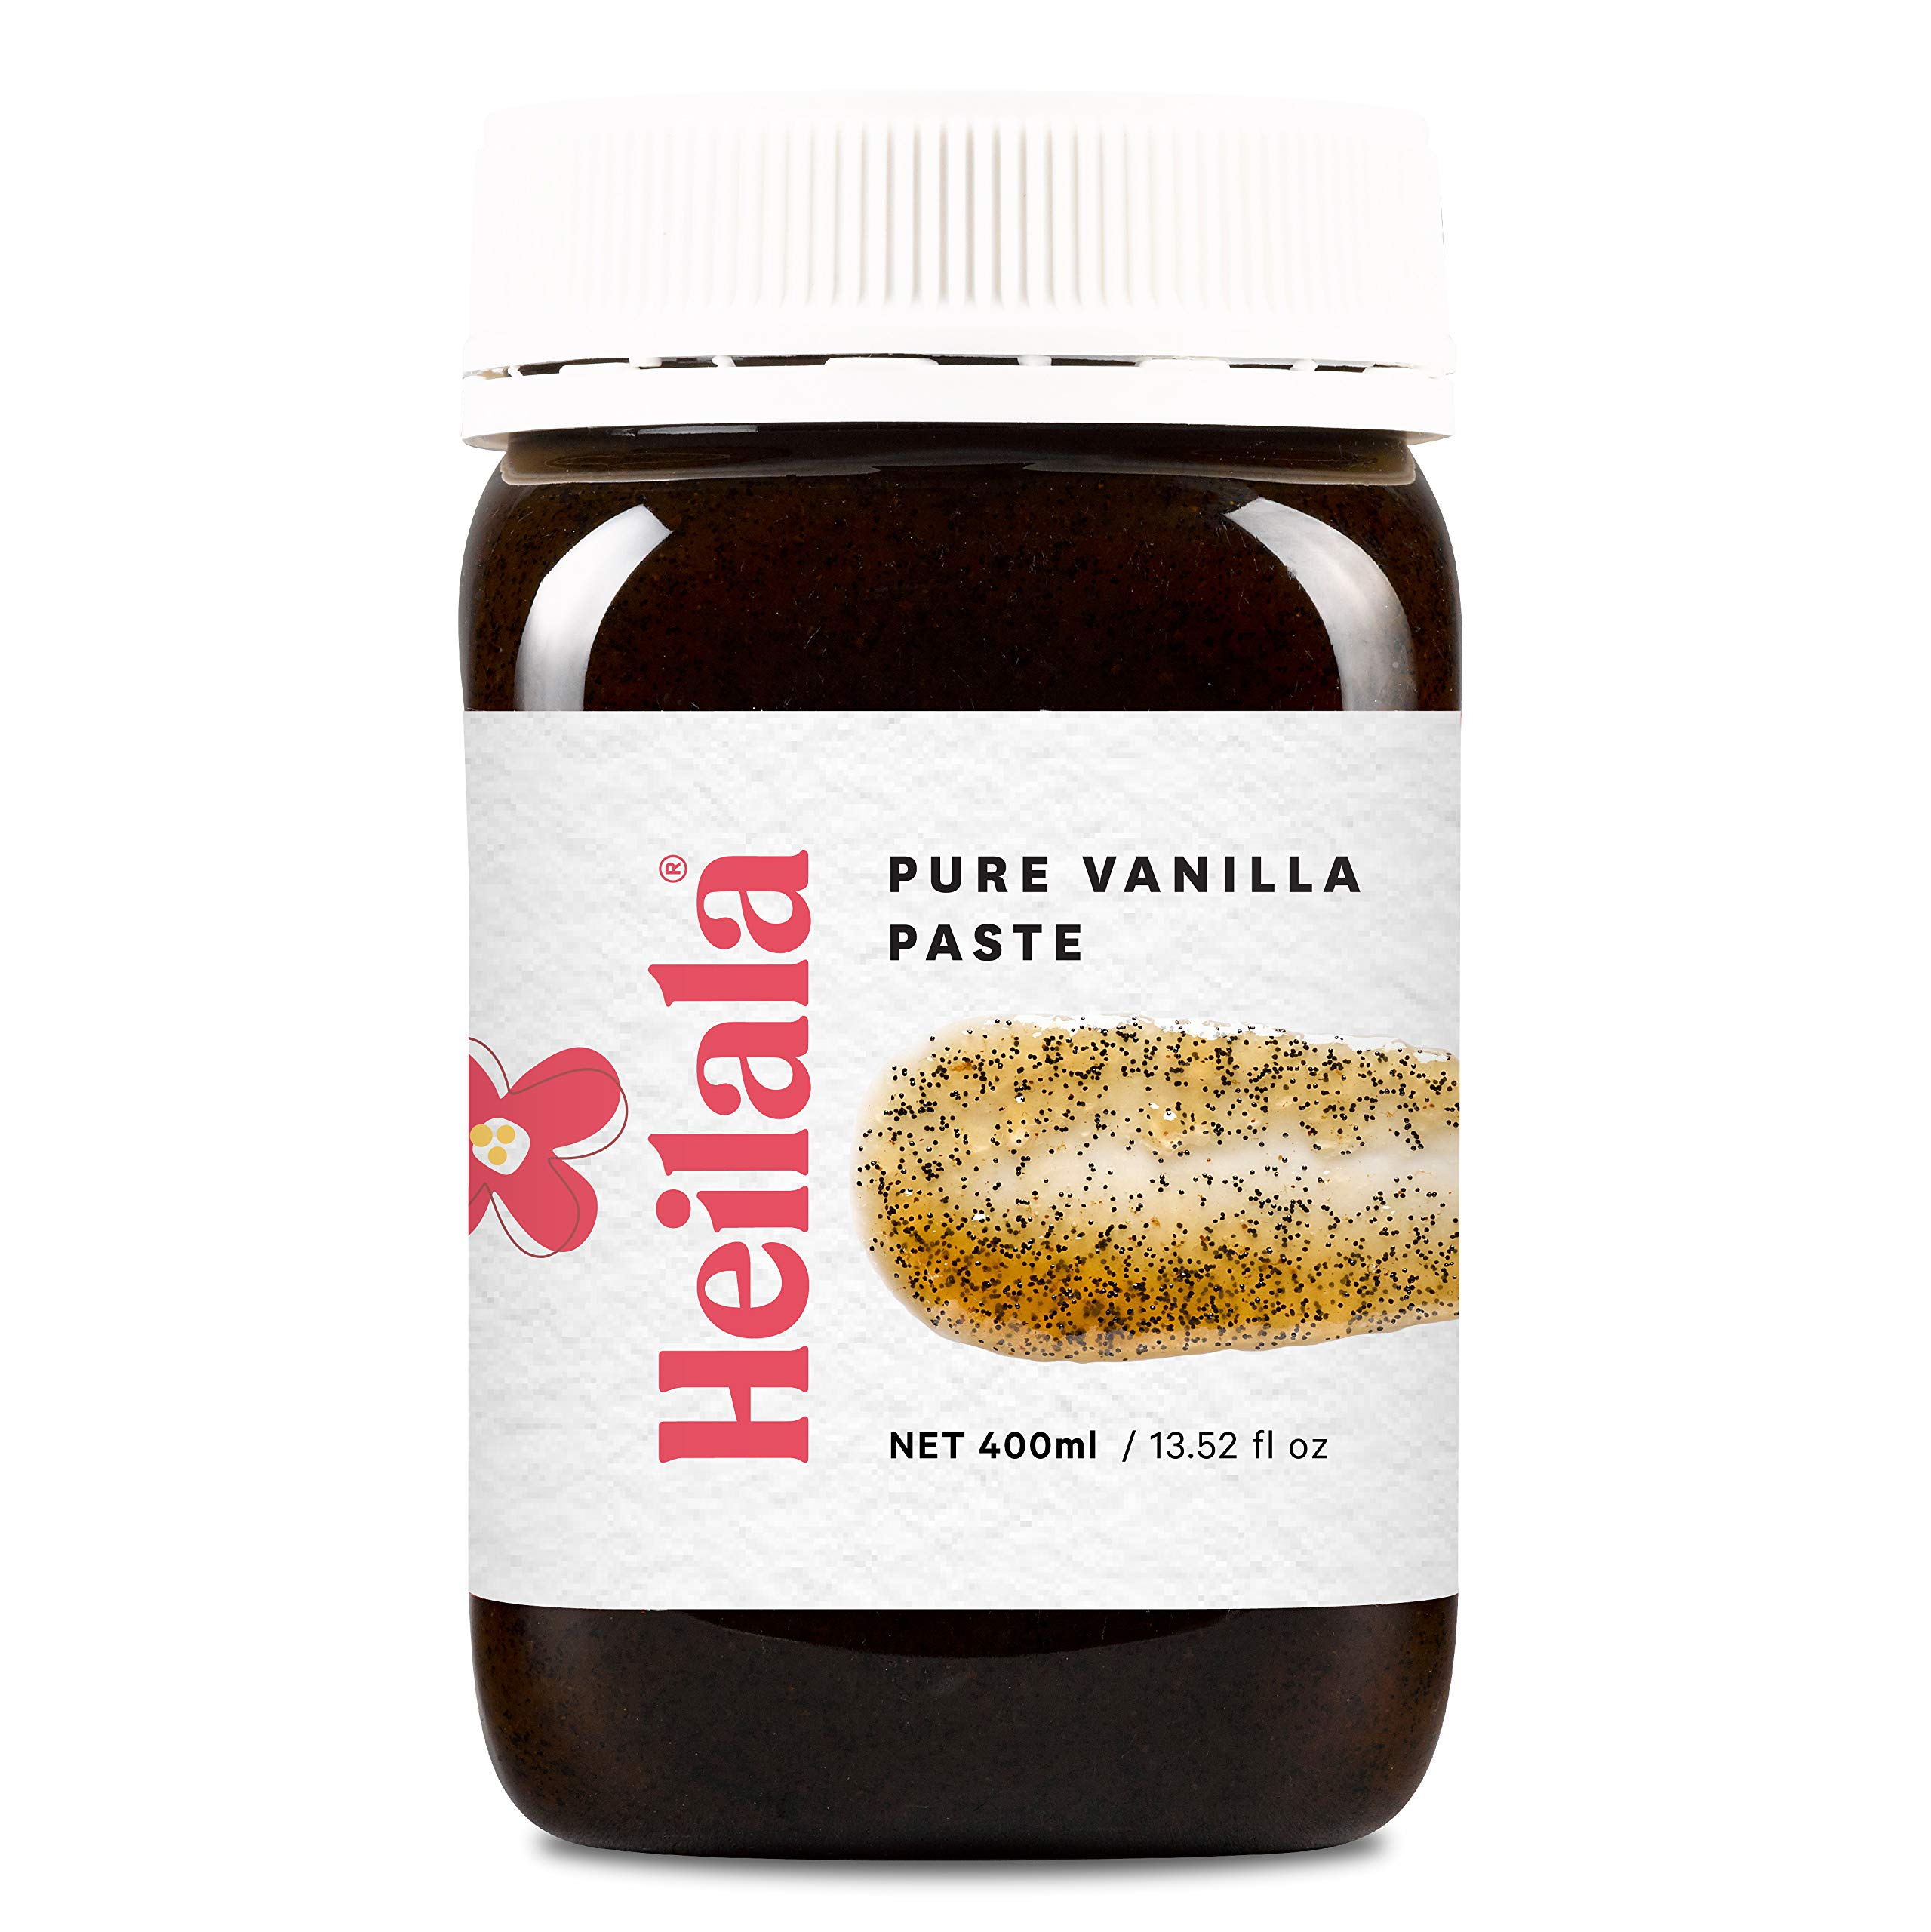 Vanilla Bean Paste for Baking - Heilala Pure Vanilla Bean Paste (13.52 fl oz), Contains Whole Vanilla Bean Seeds